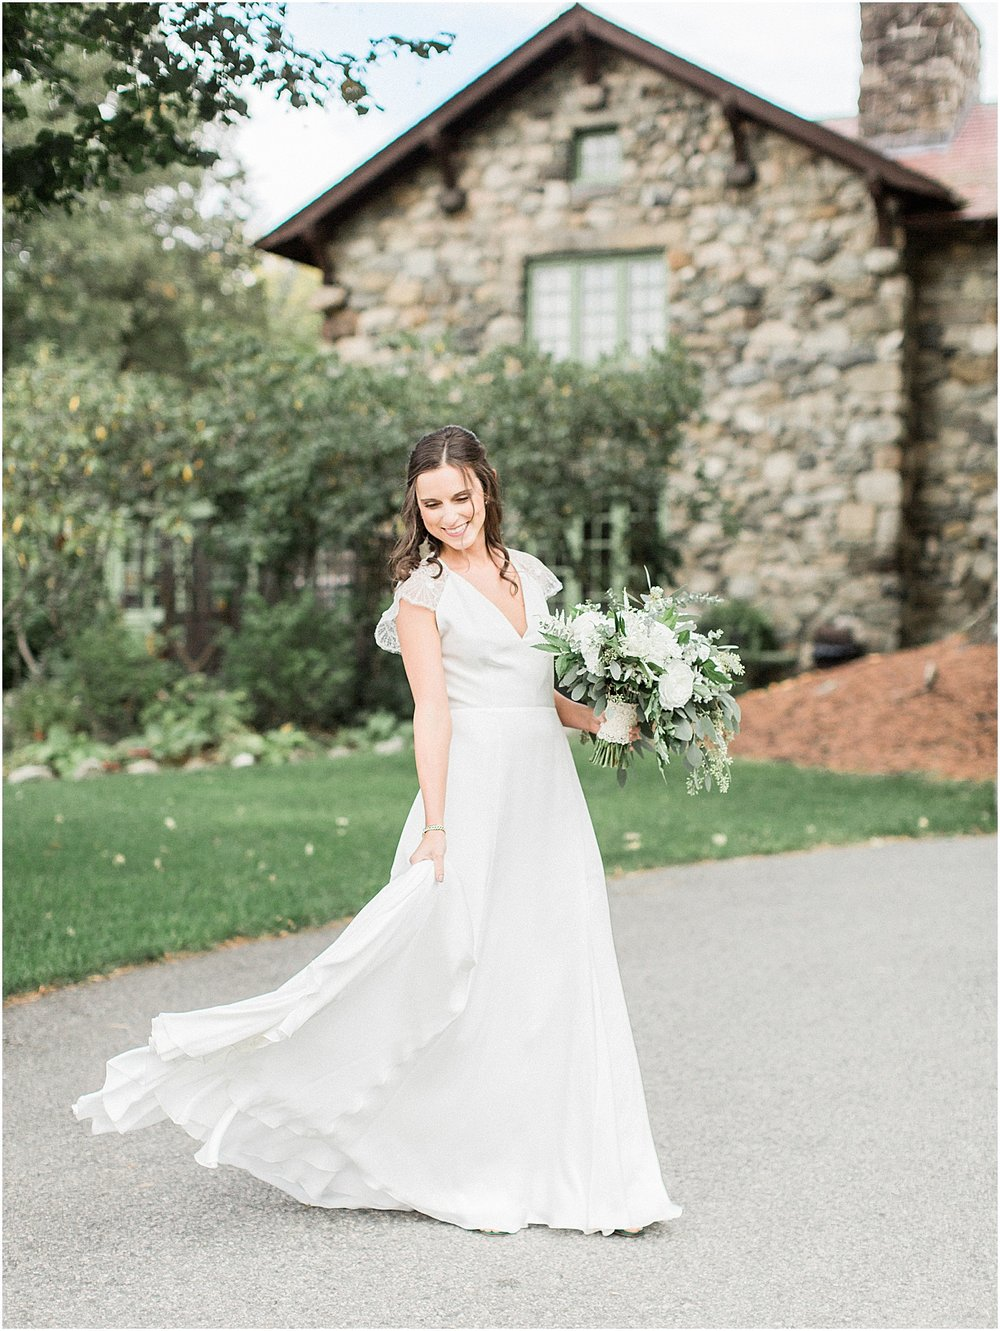 jenna_mike_willowdale_estate_topsfield_neutral_whites_greens_fall_cape_cod_boston_wedding_photographer_meredith_jane_photography_photo_1442.jpg